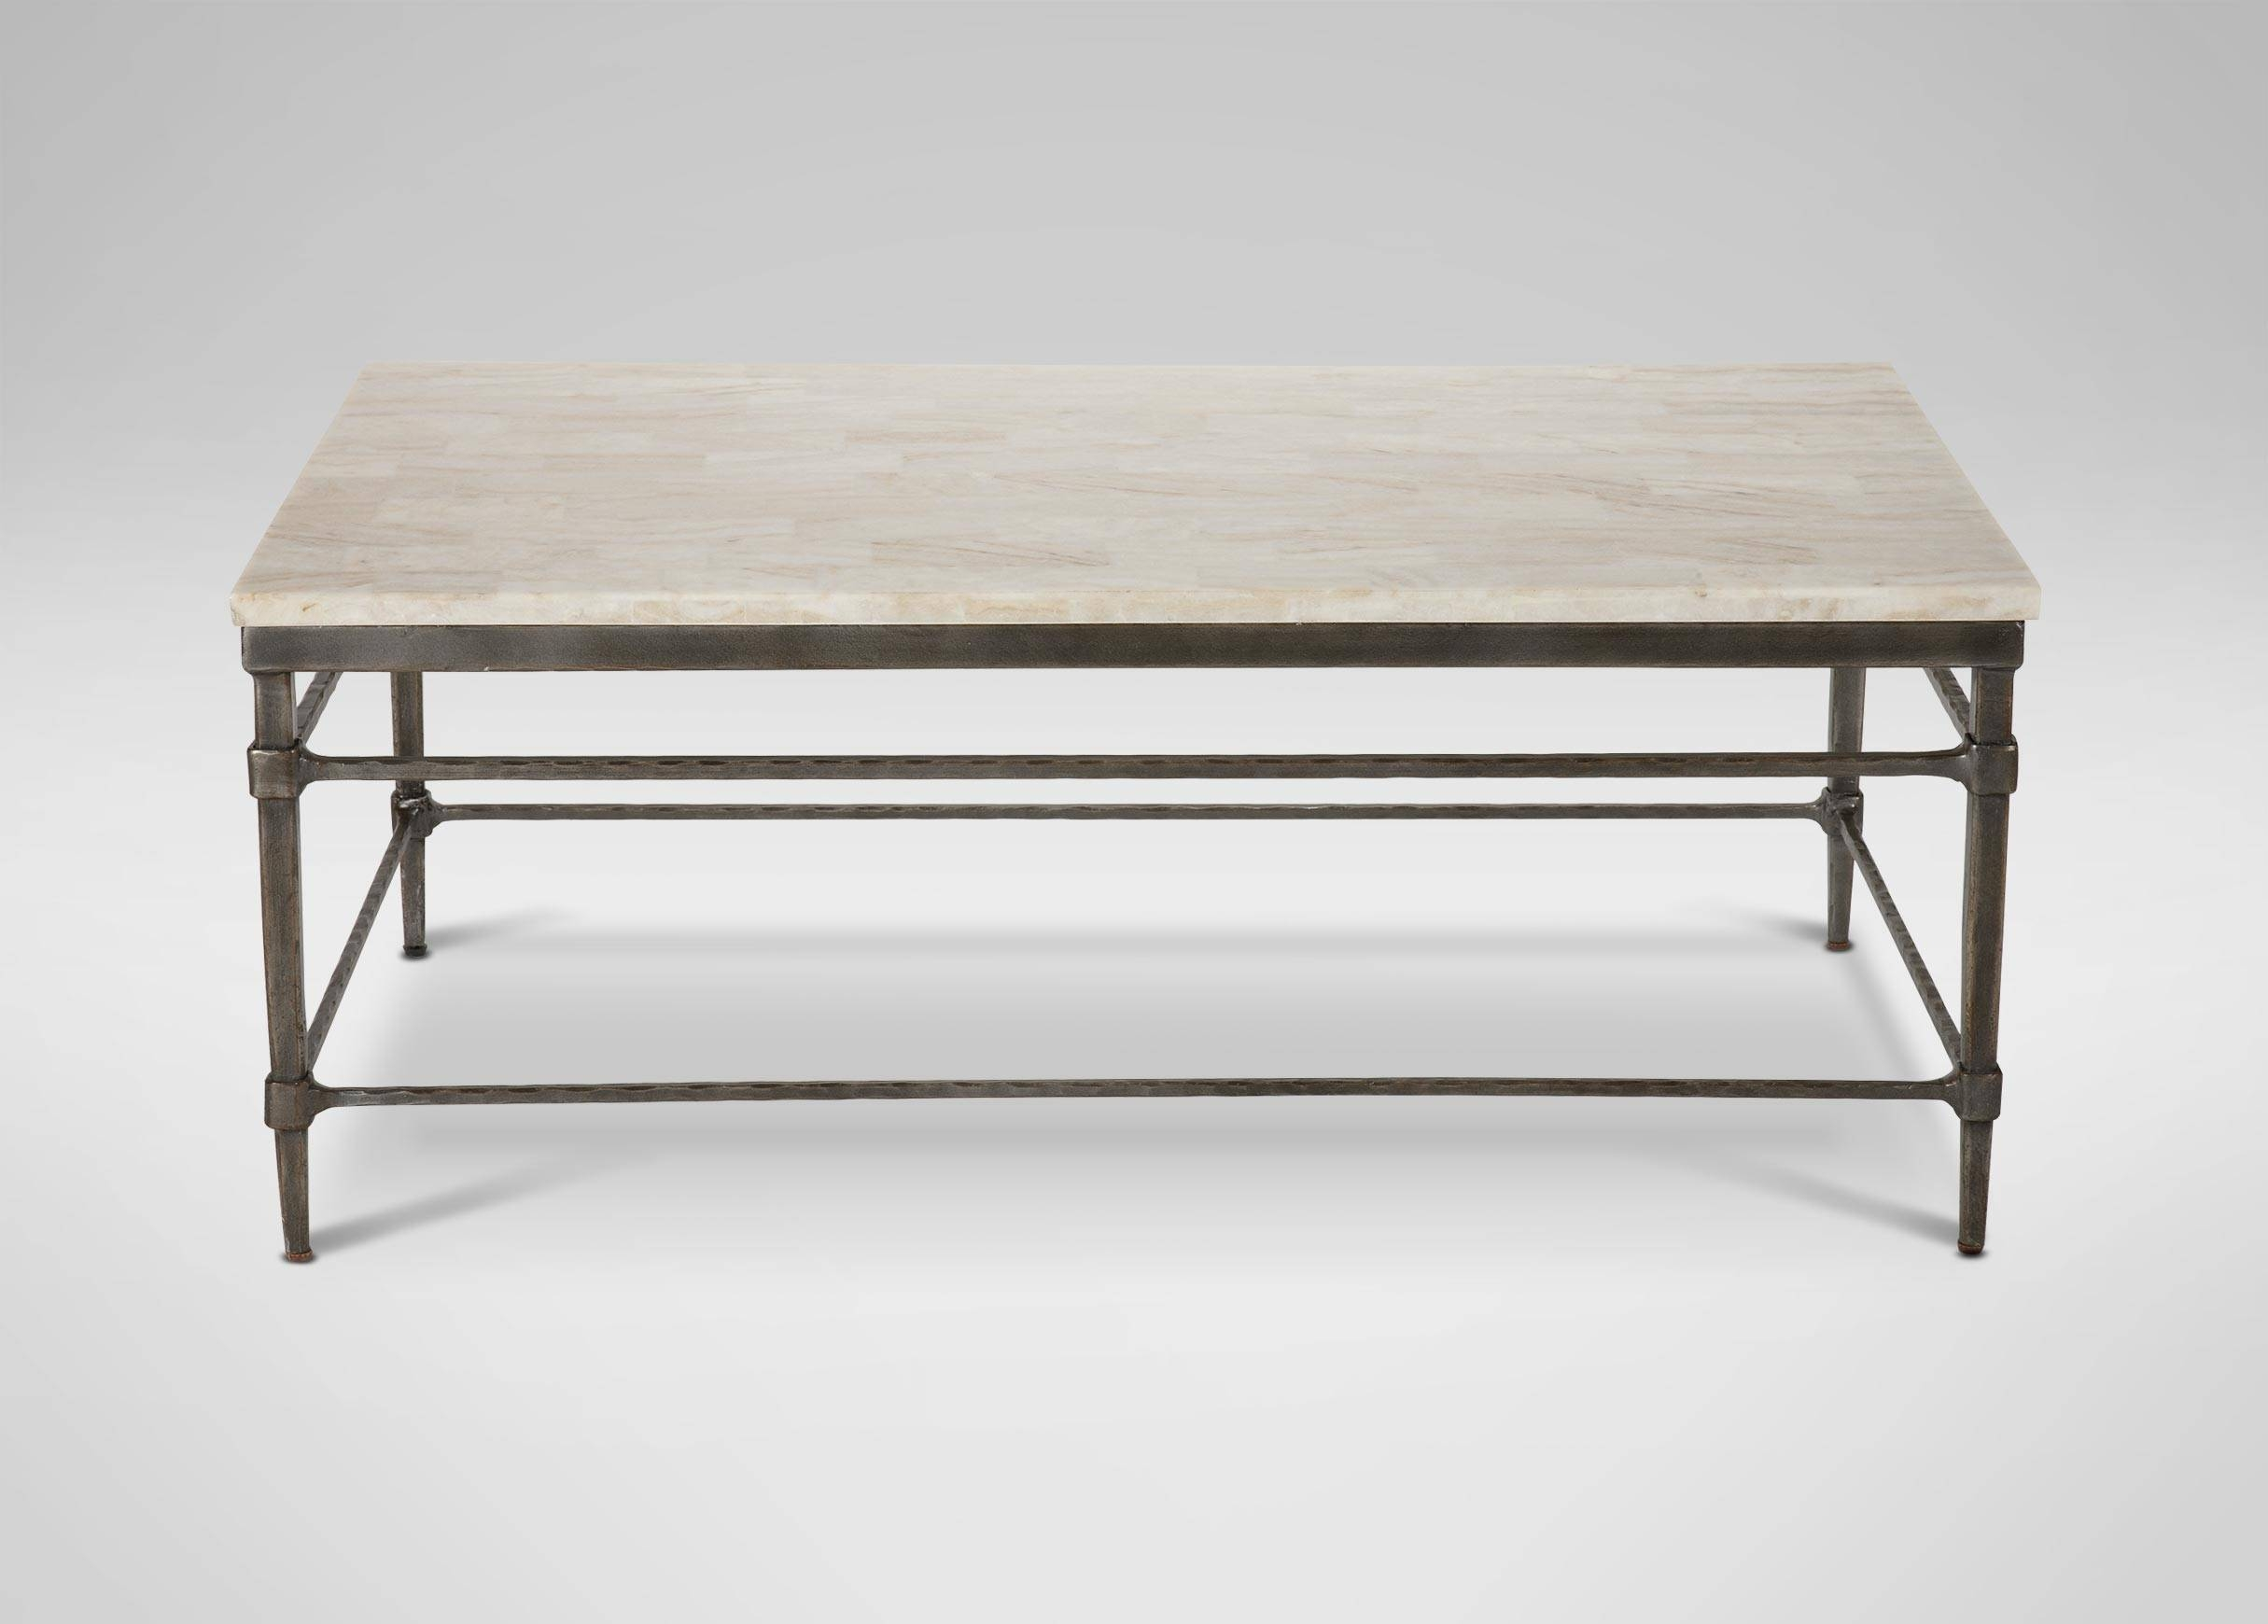 Vida Stone-Top Coffee Table | Coffee Tables with Large Rectangular Coffee Tables (Image 30 of 30)